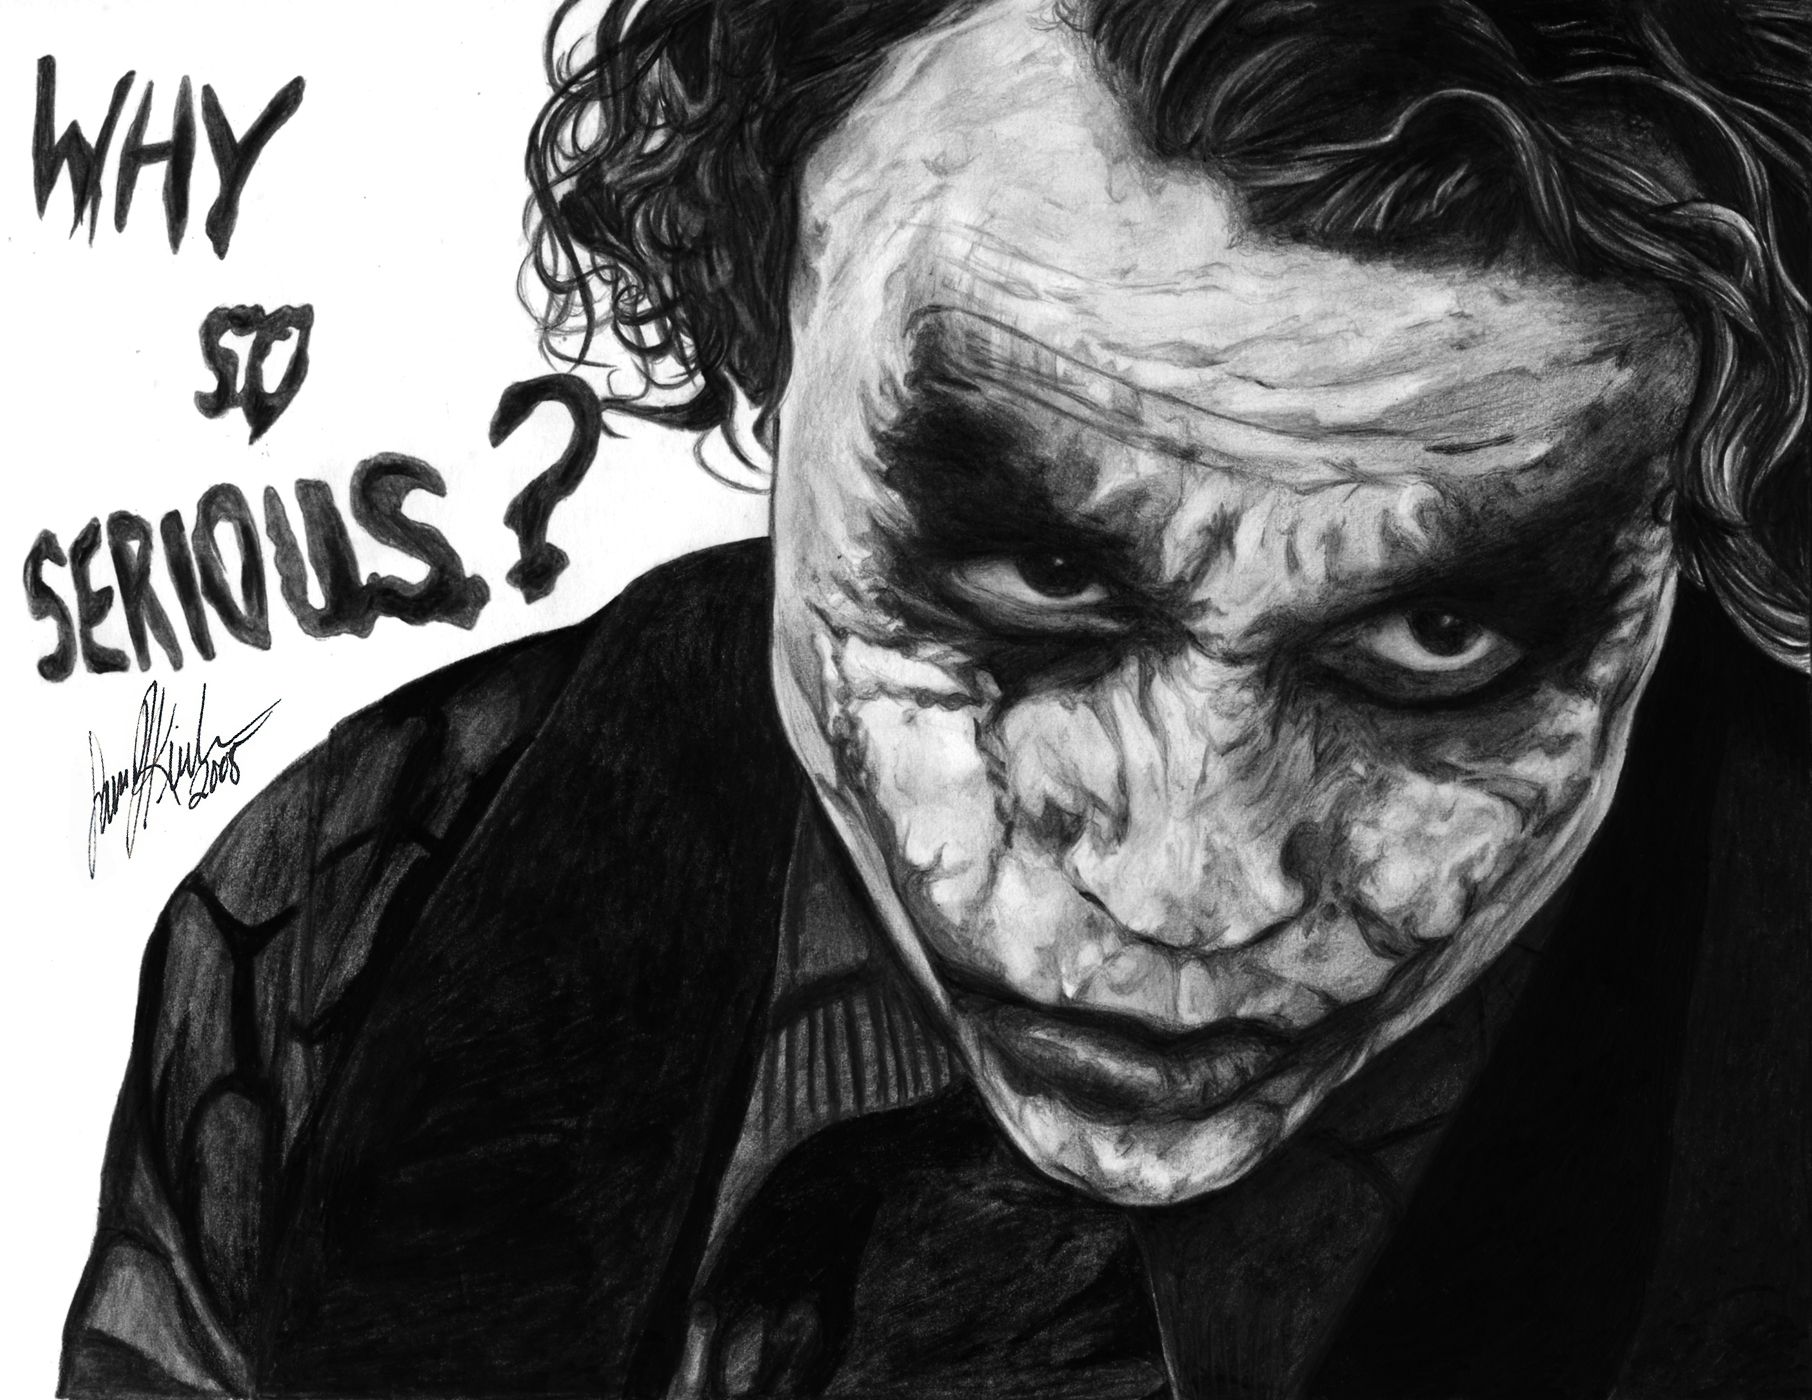 Joker Why So Serious Wallpaper 1080p Jqswc For Iphone Quotes Dark